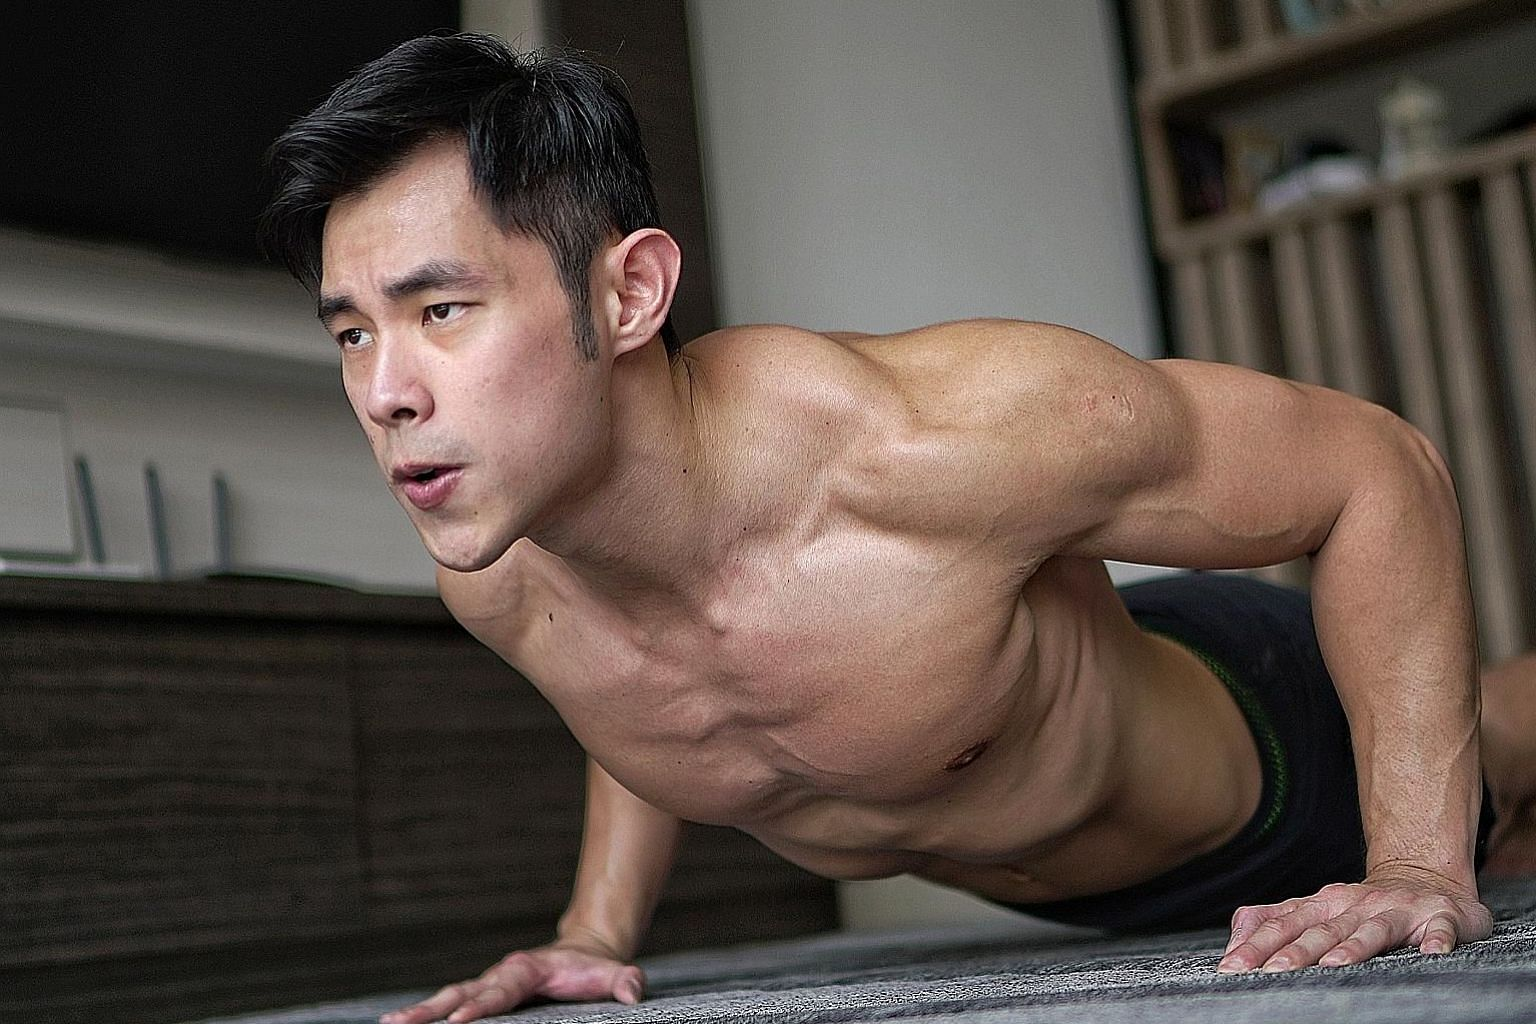 Personal trainer Jordan Yeoh discovered his passion for fitness when he started going to the gym with a friend.